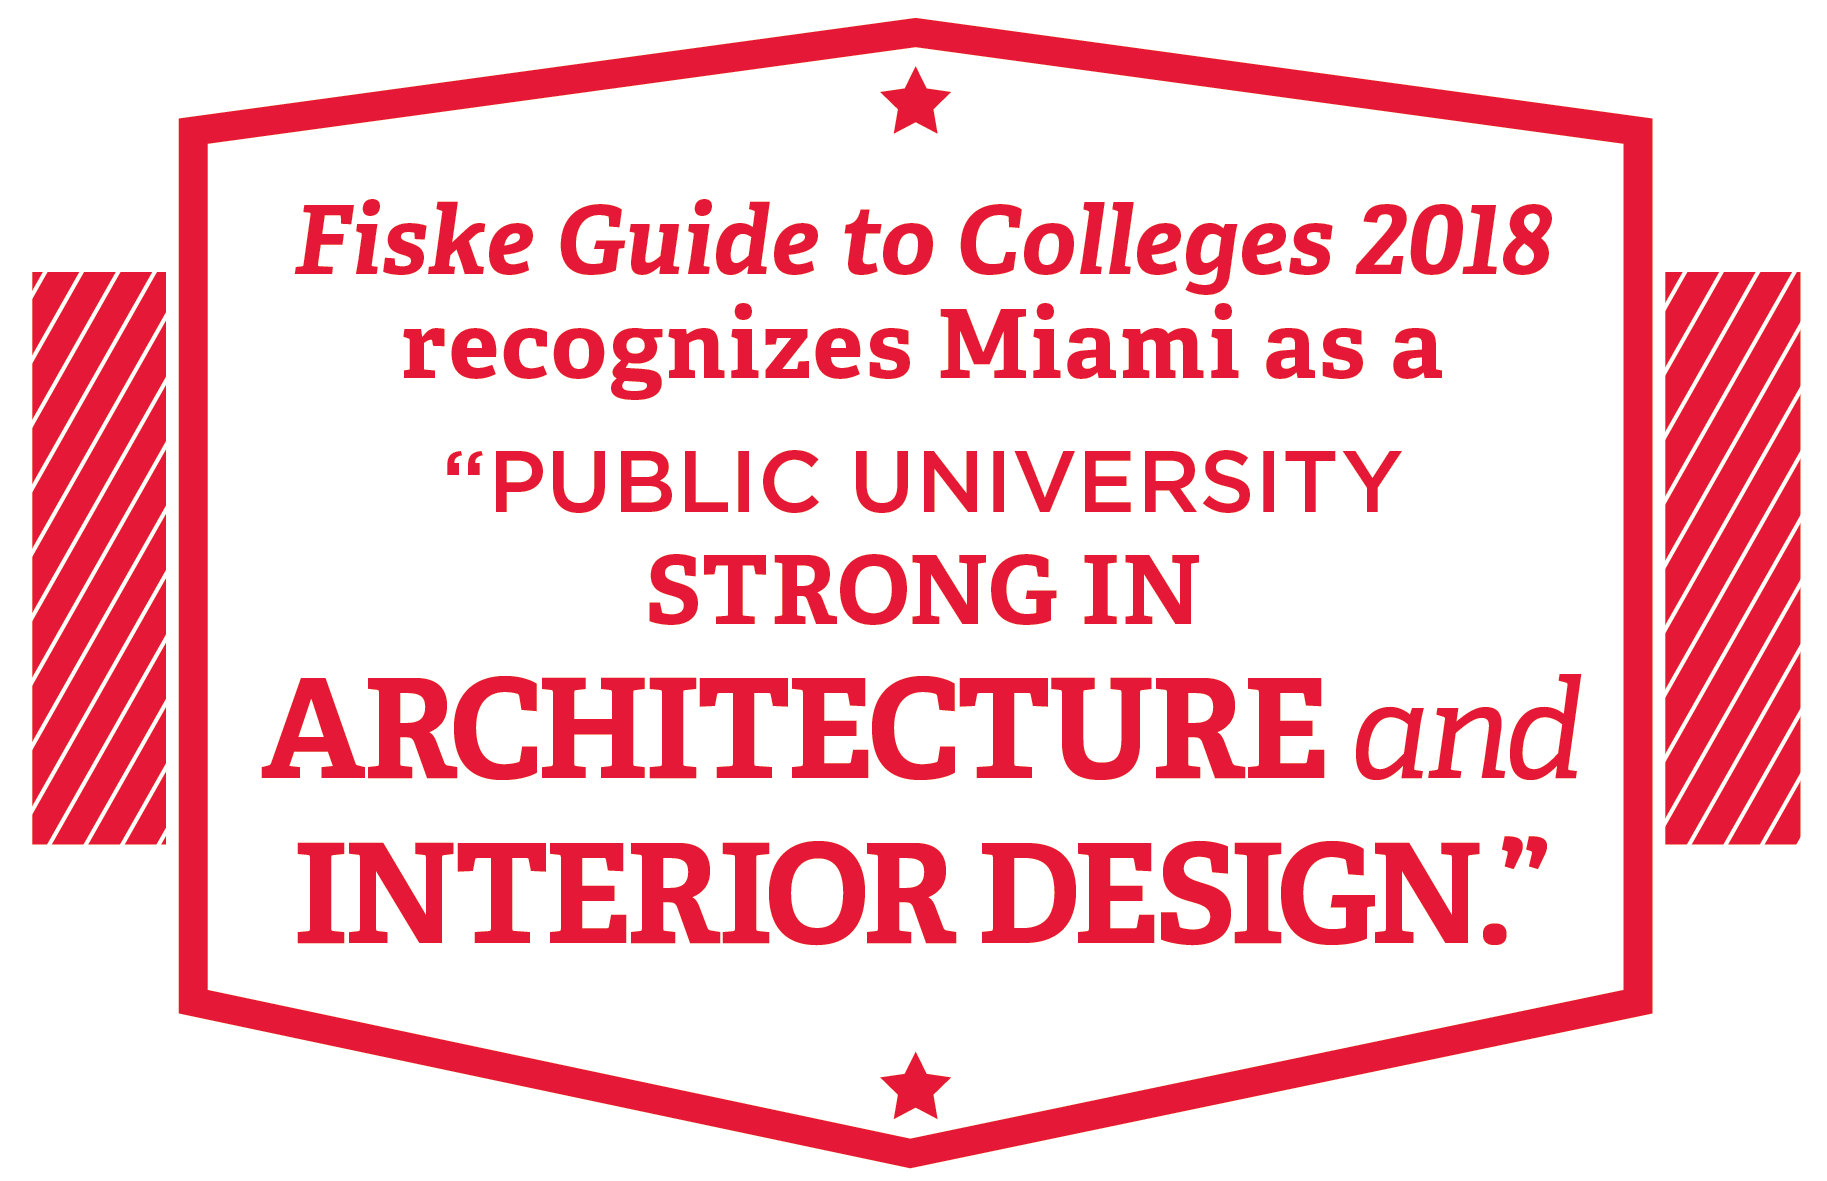 Fiske Guide to Colleges 2018 recognizes Miami as a 'major university strong in architecture and interior design'